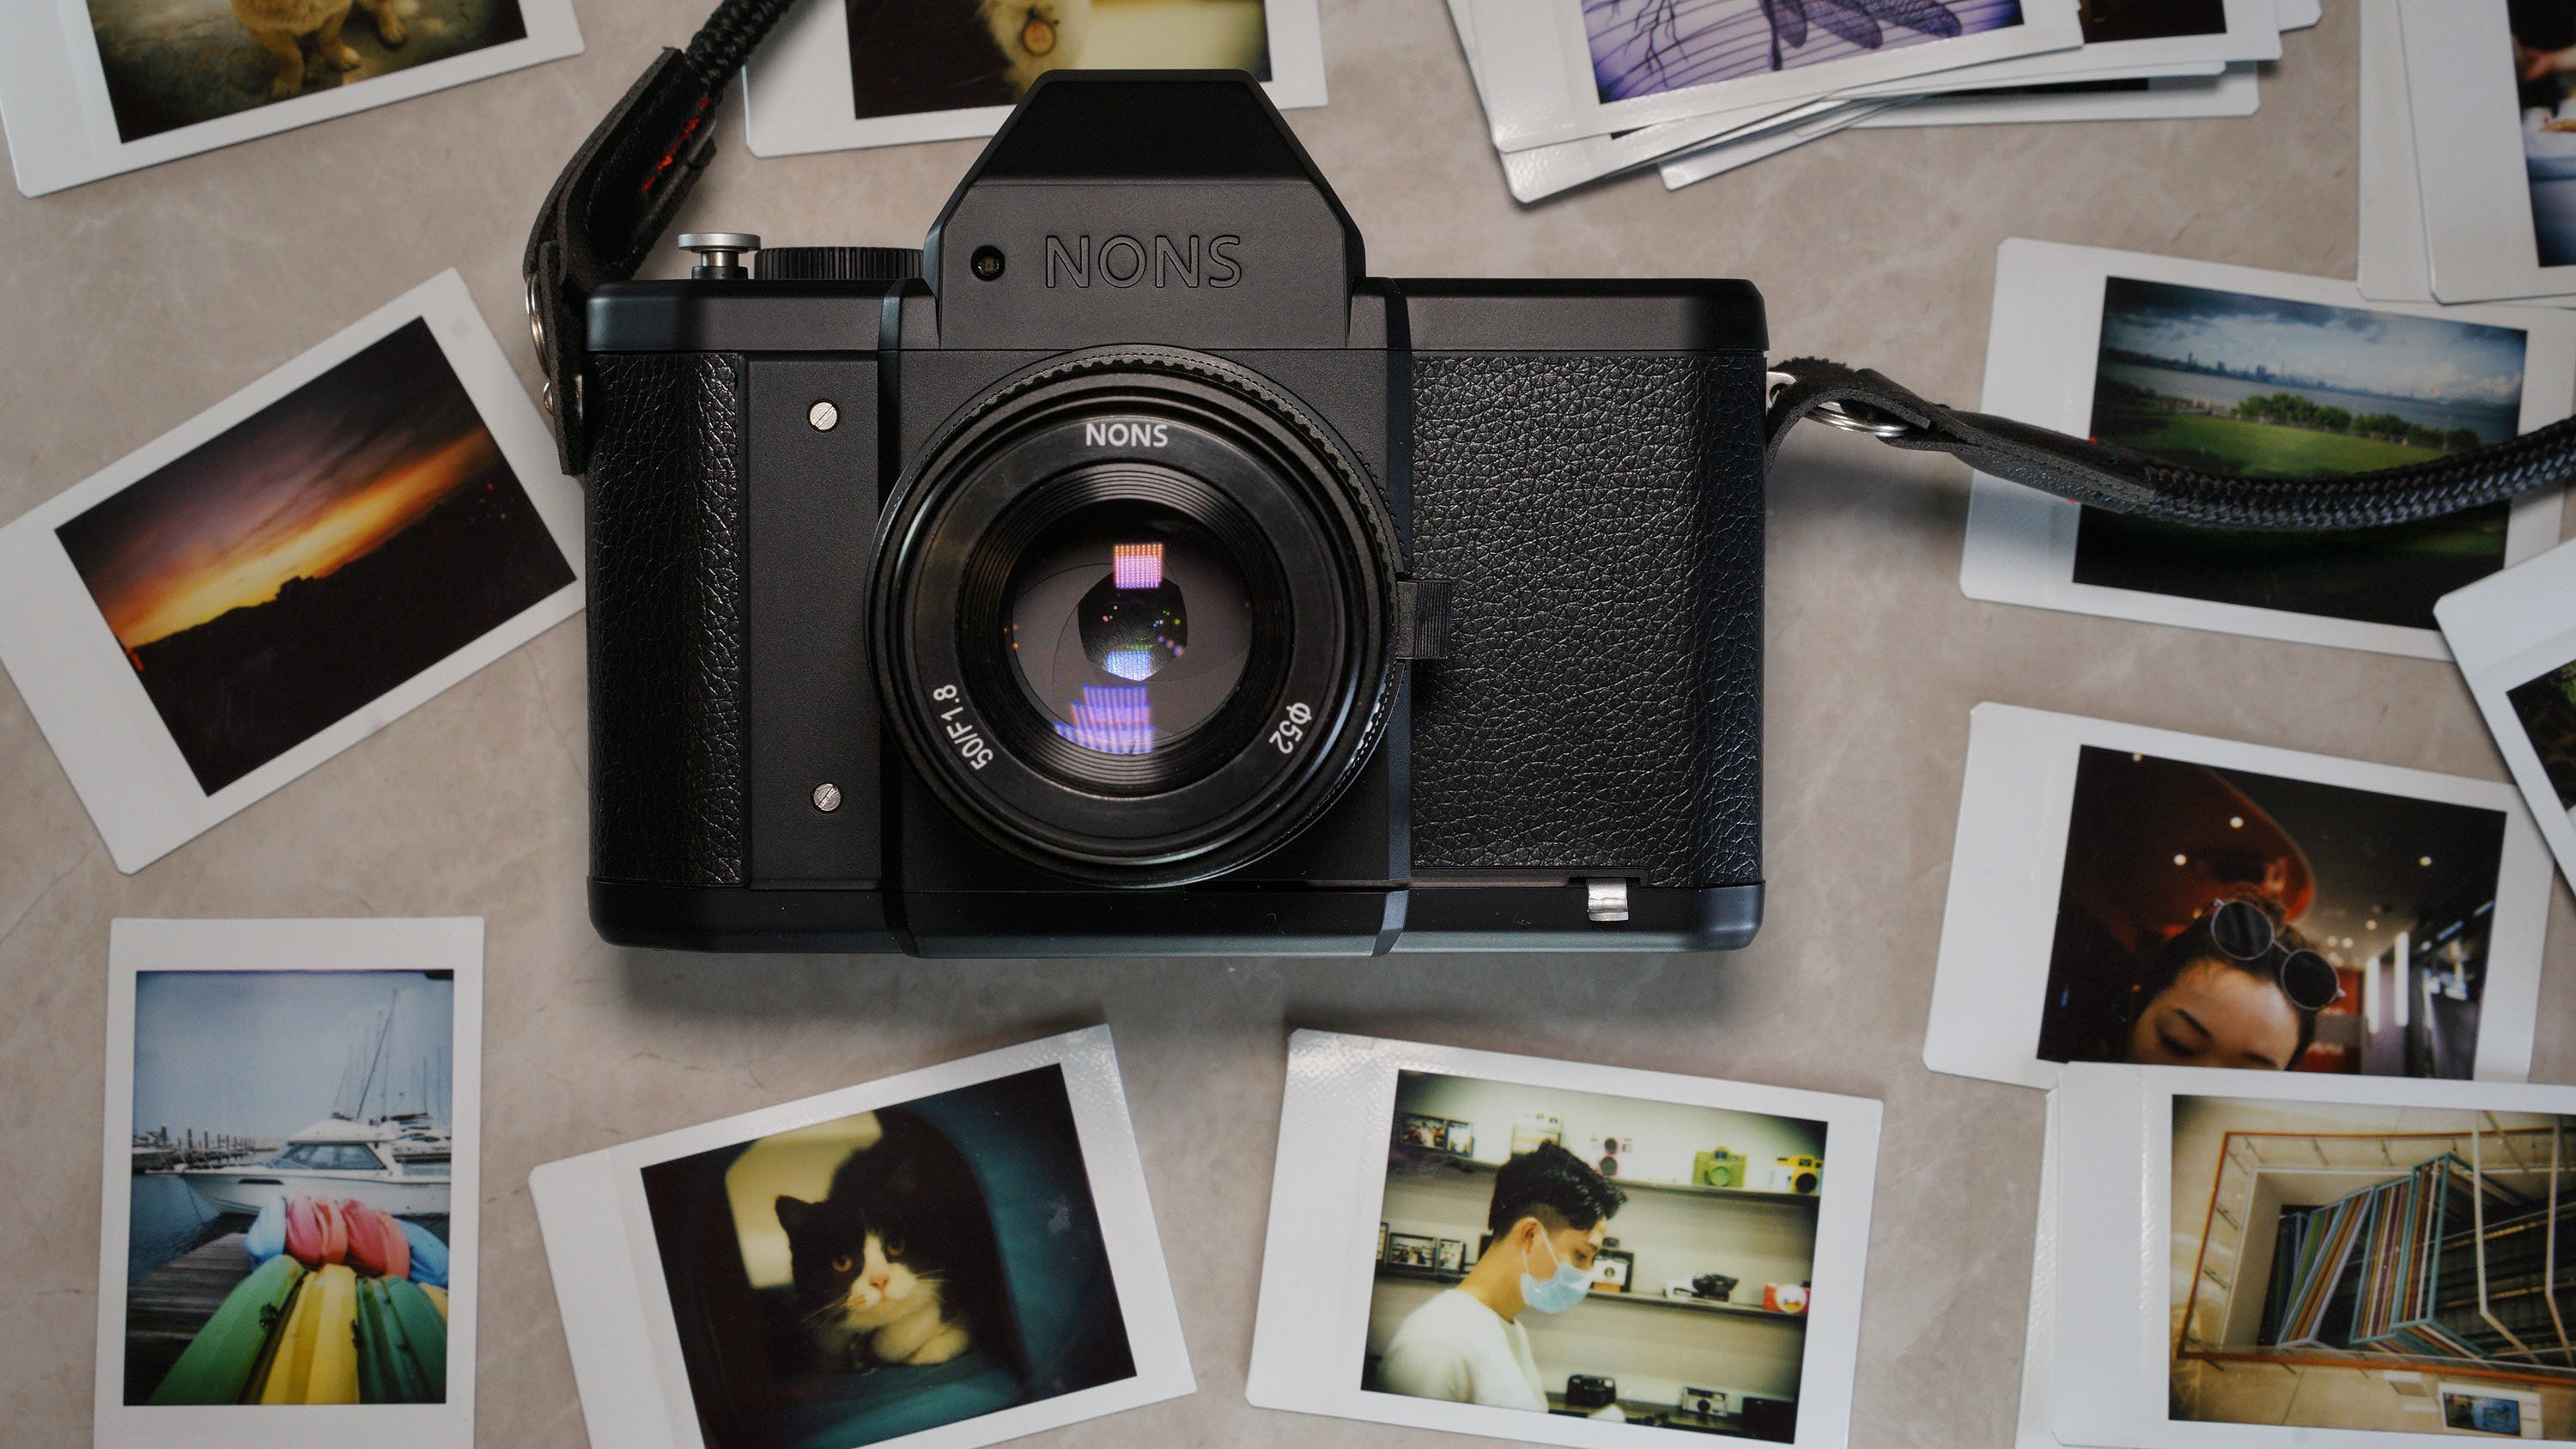 The NONS SL42 Camera: Everything You Wanted to Know